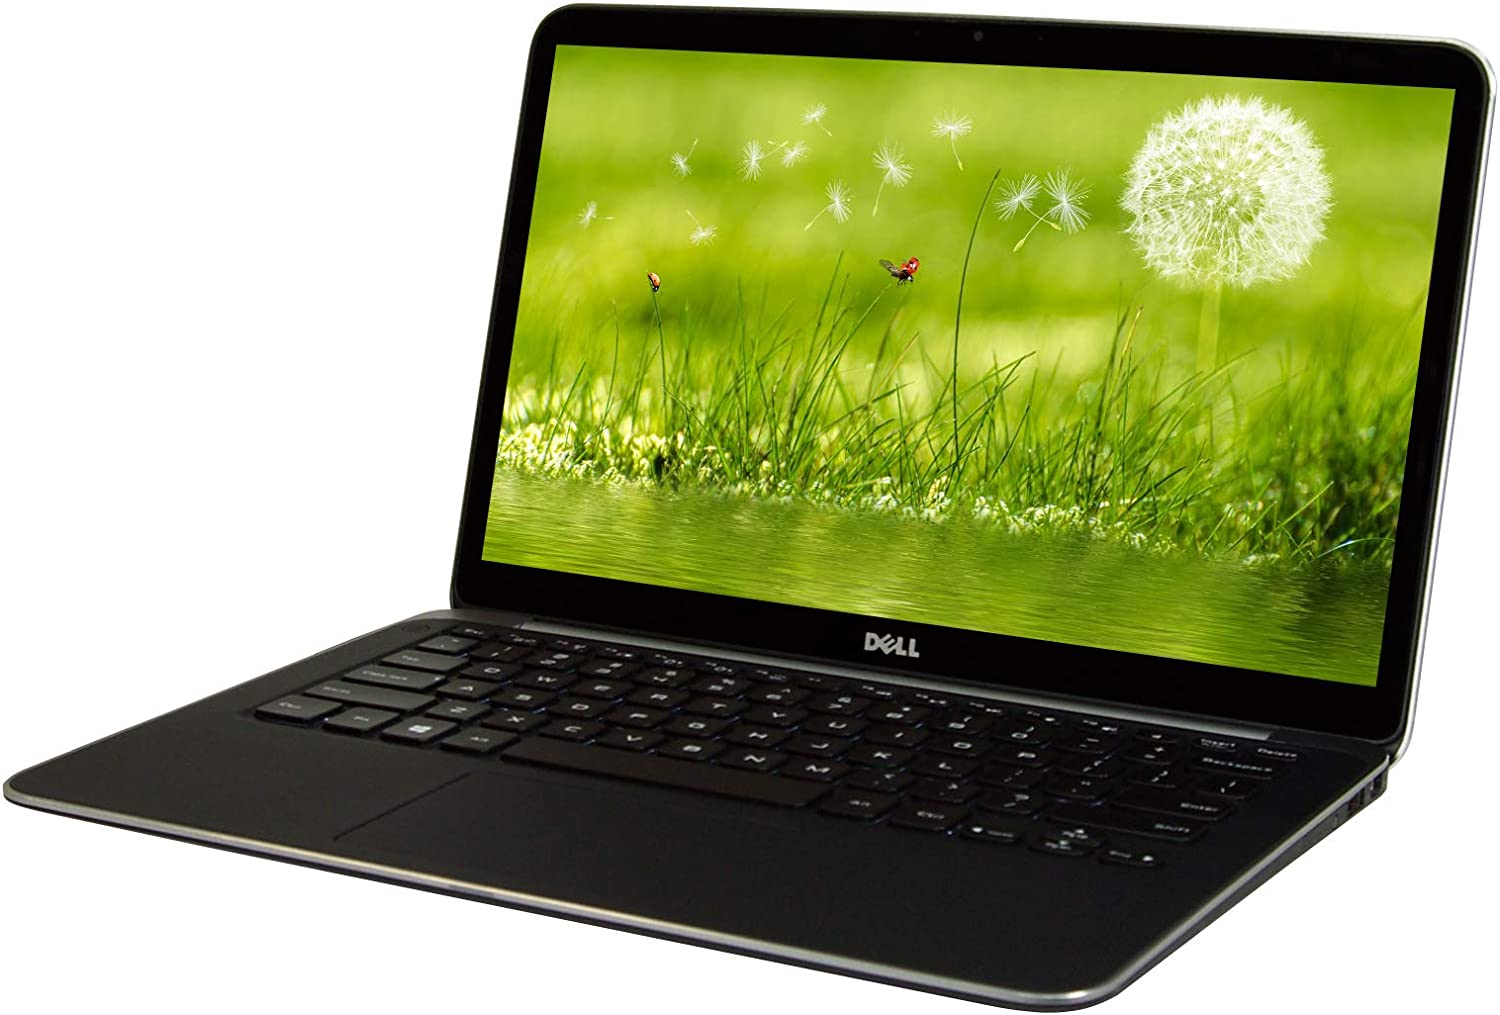 Dell XPS 13 9333 13.3in FHD Laptop, Intel Core i7-4510U 2.0GHz, 8GB RAM, 256GB Solid State Drive, NO_ODD, CAM, Touch, Windows 10 Pro 64bit (Renewed)